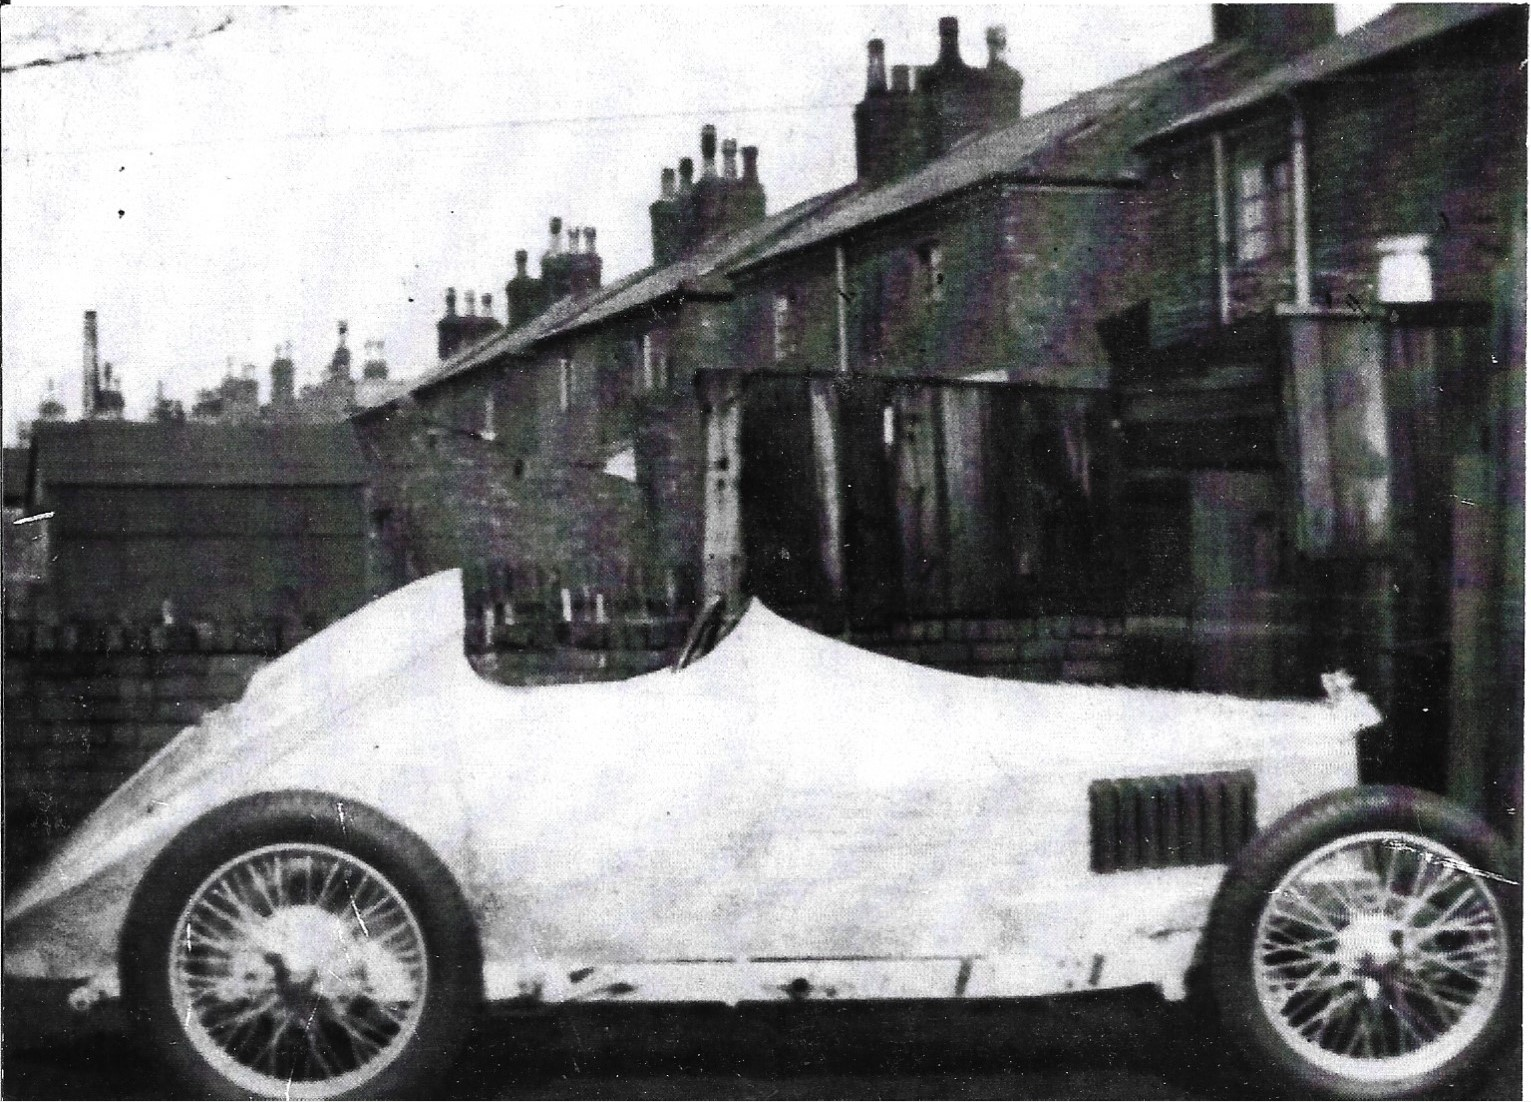 The MG J3 single seater conversion outside the workshop behind houses somewhere in Southport where it was looked after. Photo by Nev Church